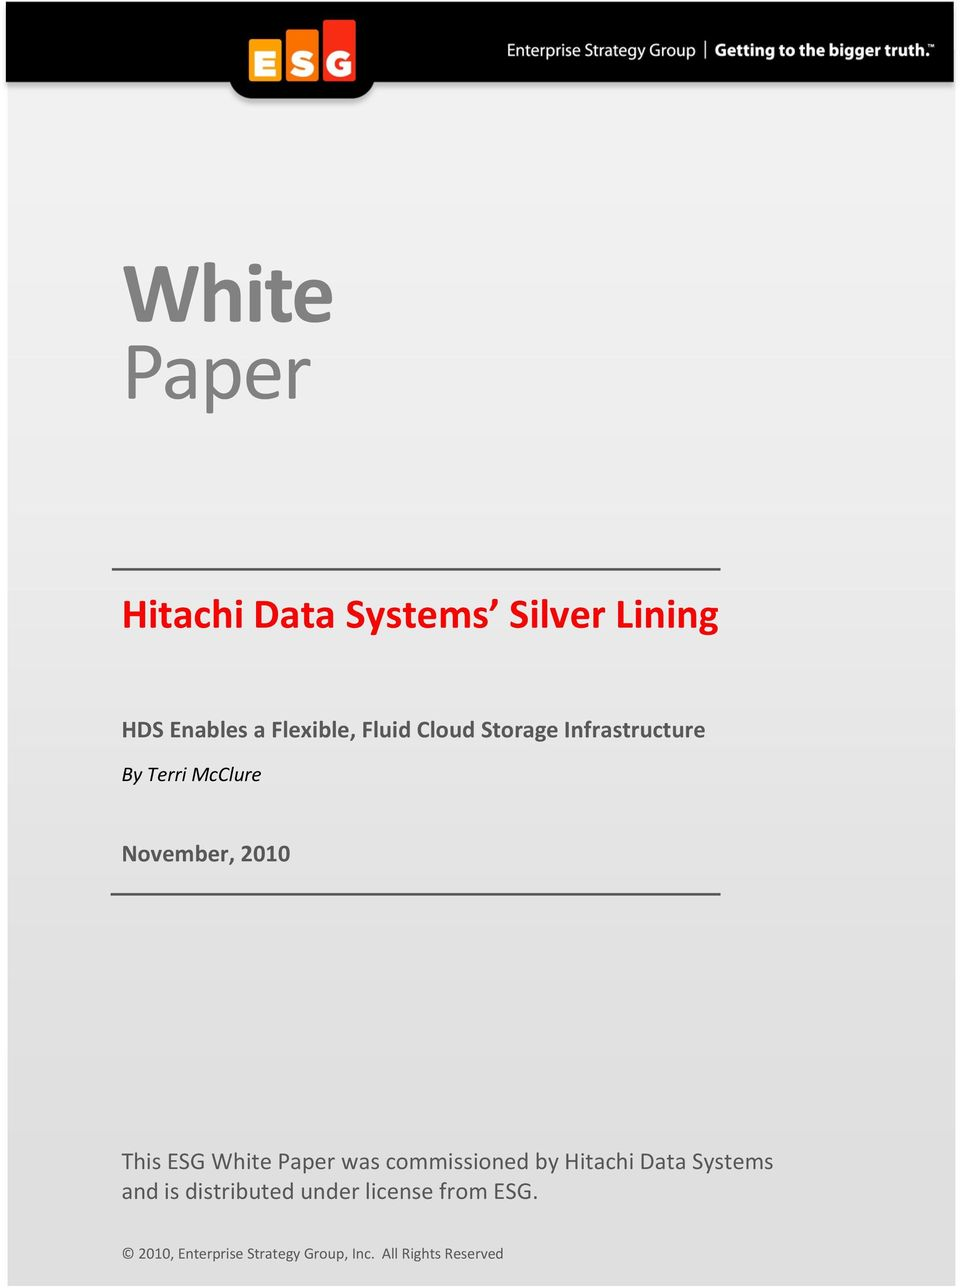 ESG White Paper was commissioned by Hitachi Data Systems and is